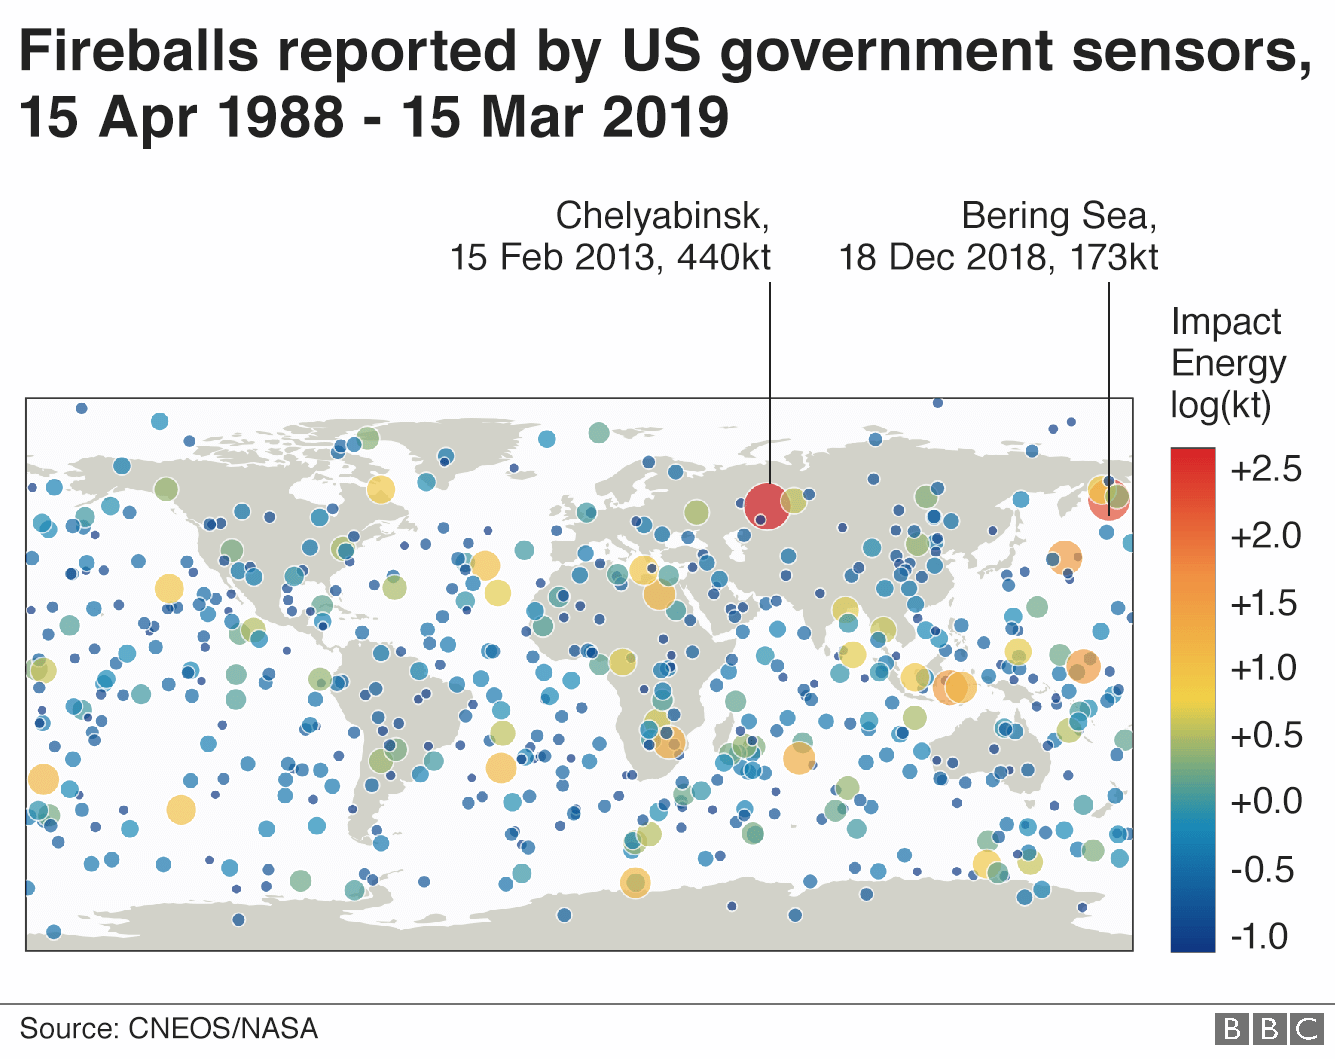 Fireball chart showing Chelyabinsk and Bering Sea fireballs